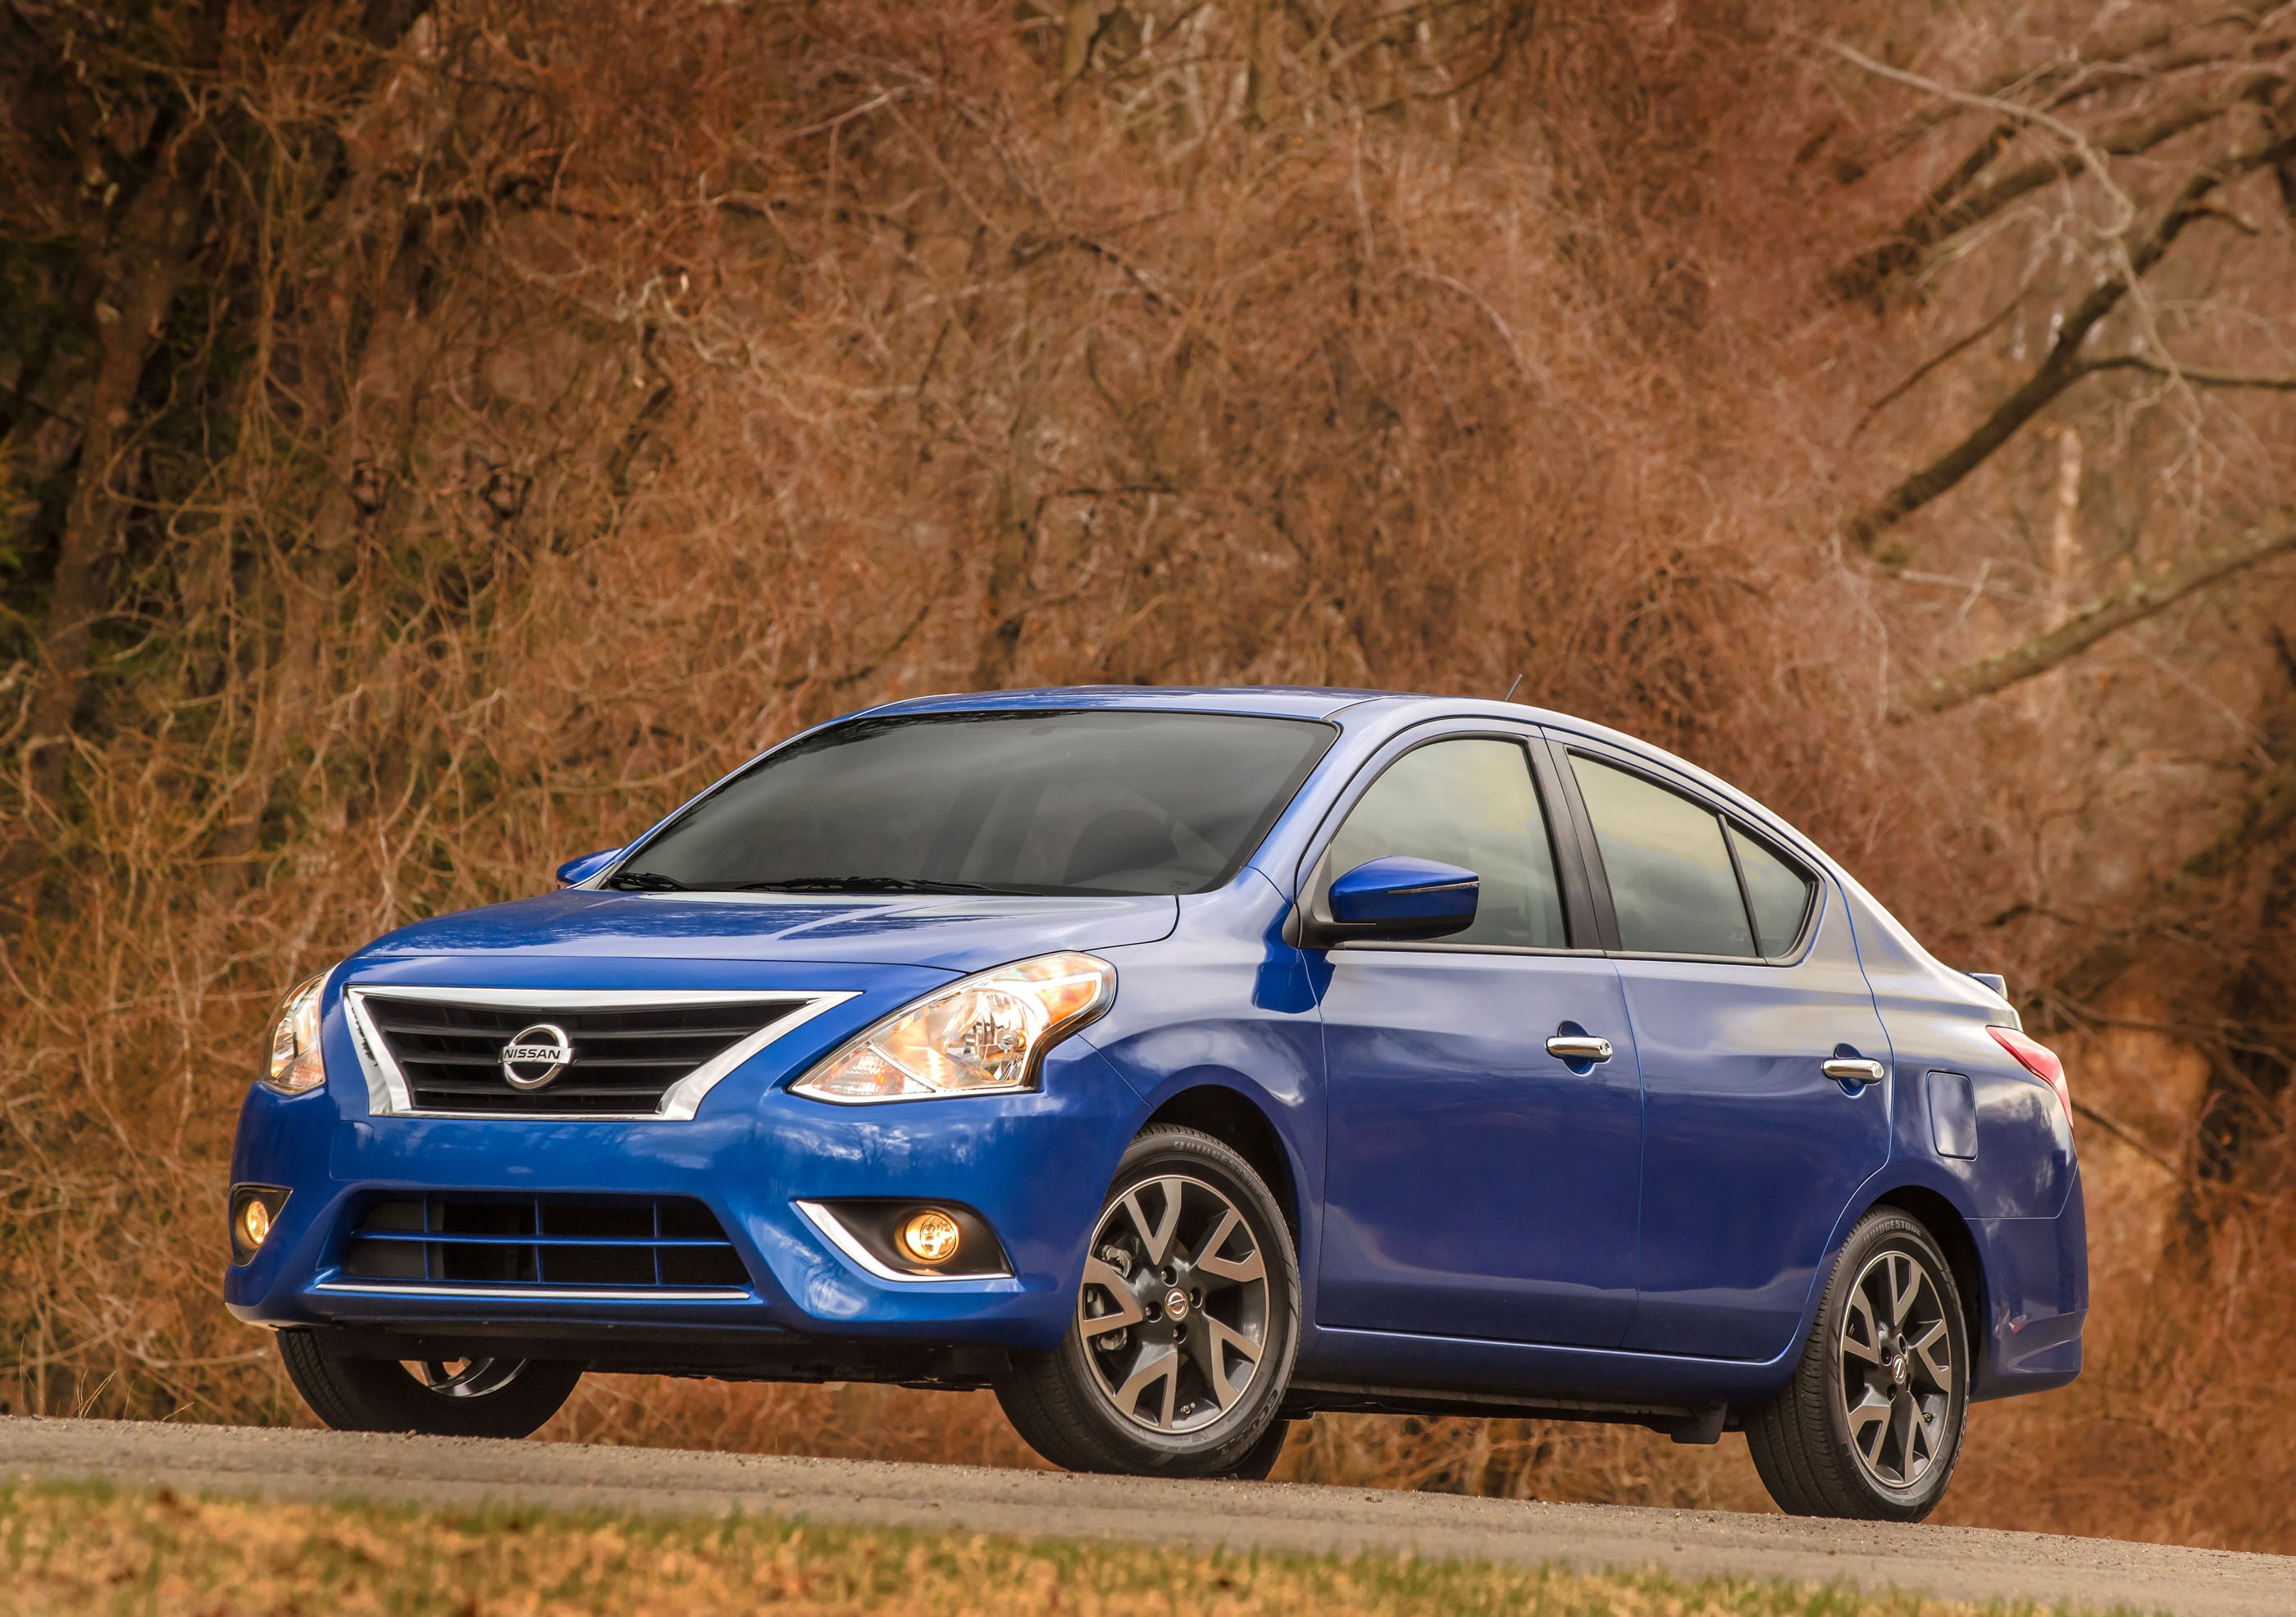 h compare nissan news cars accent versa hyundai vs